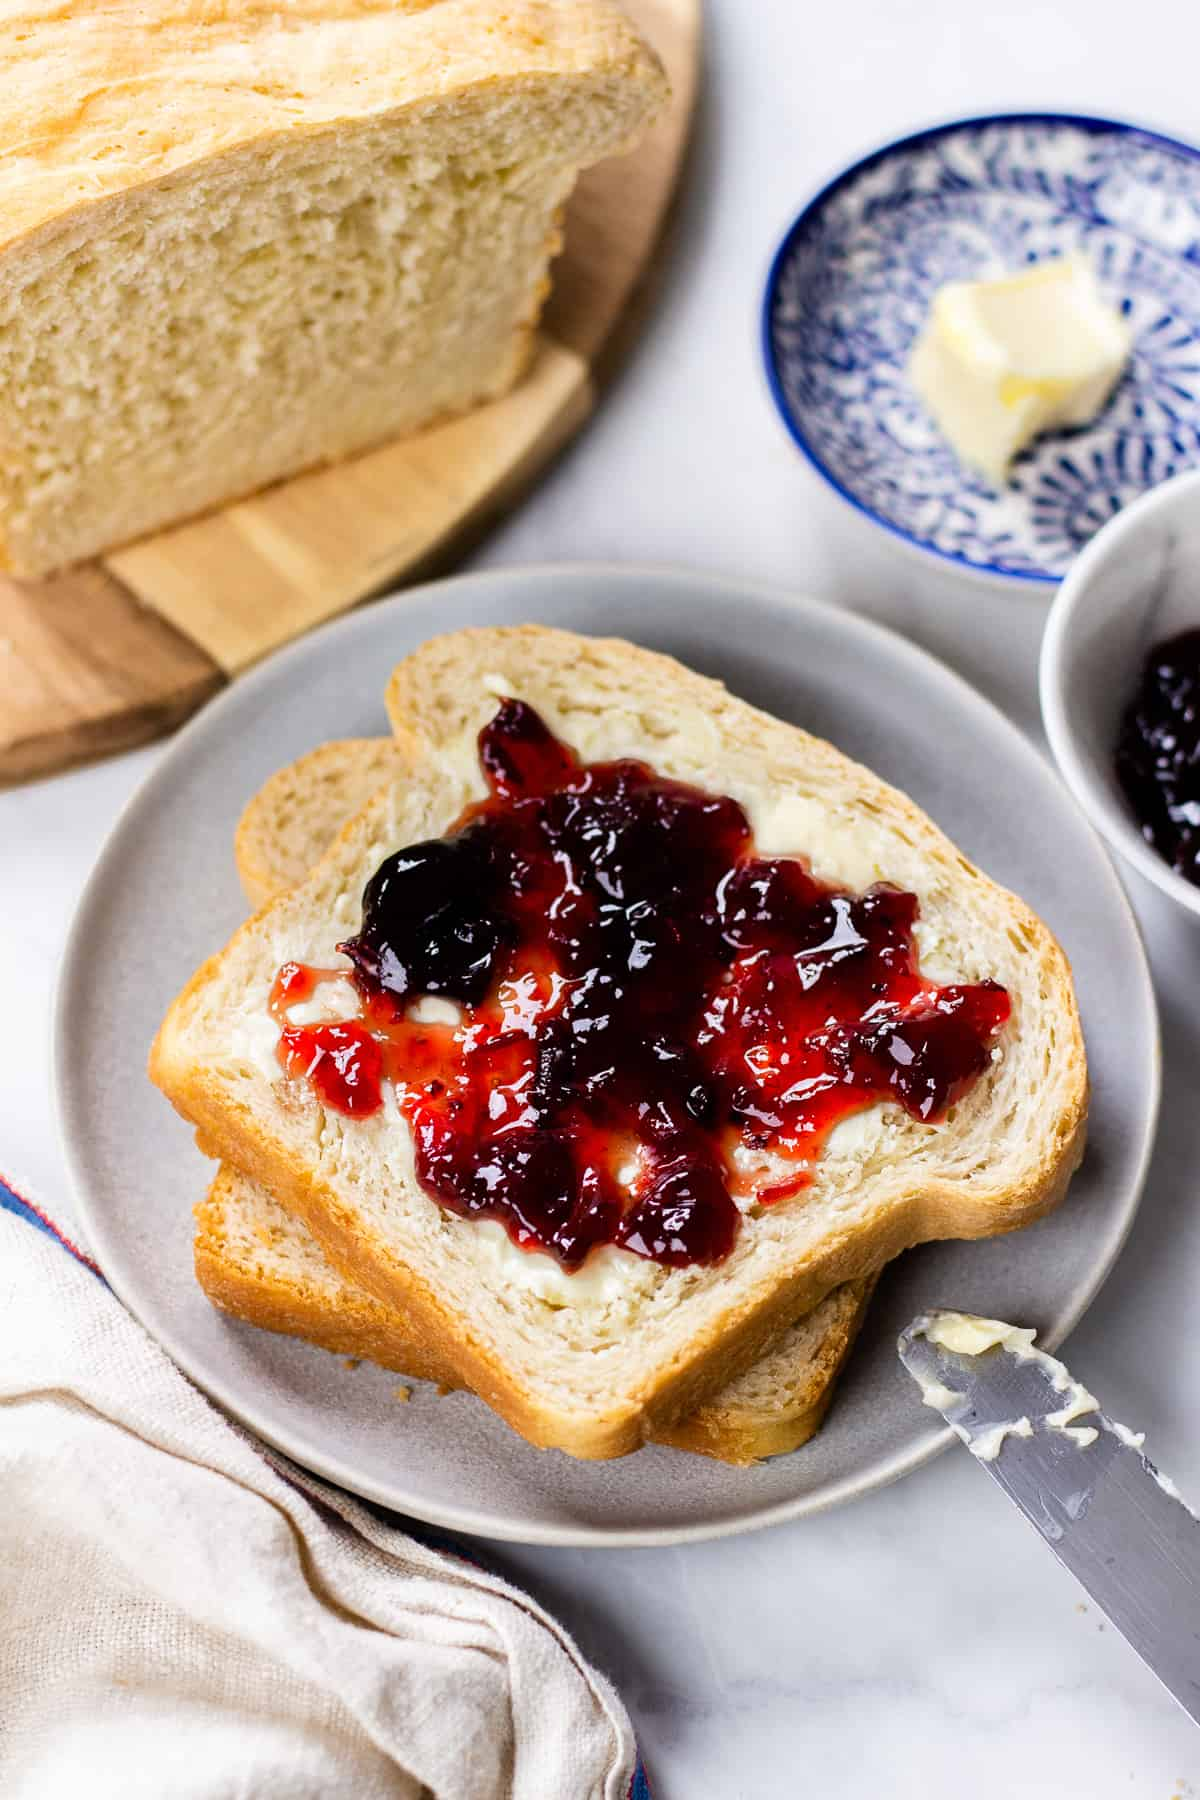 Two slices of bread, topped with butter and jam on a grey plate.